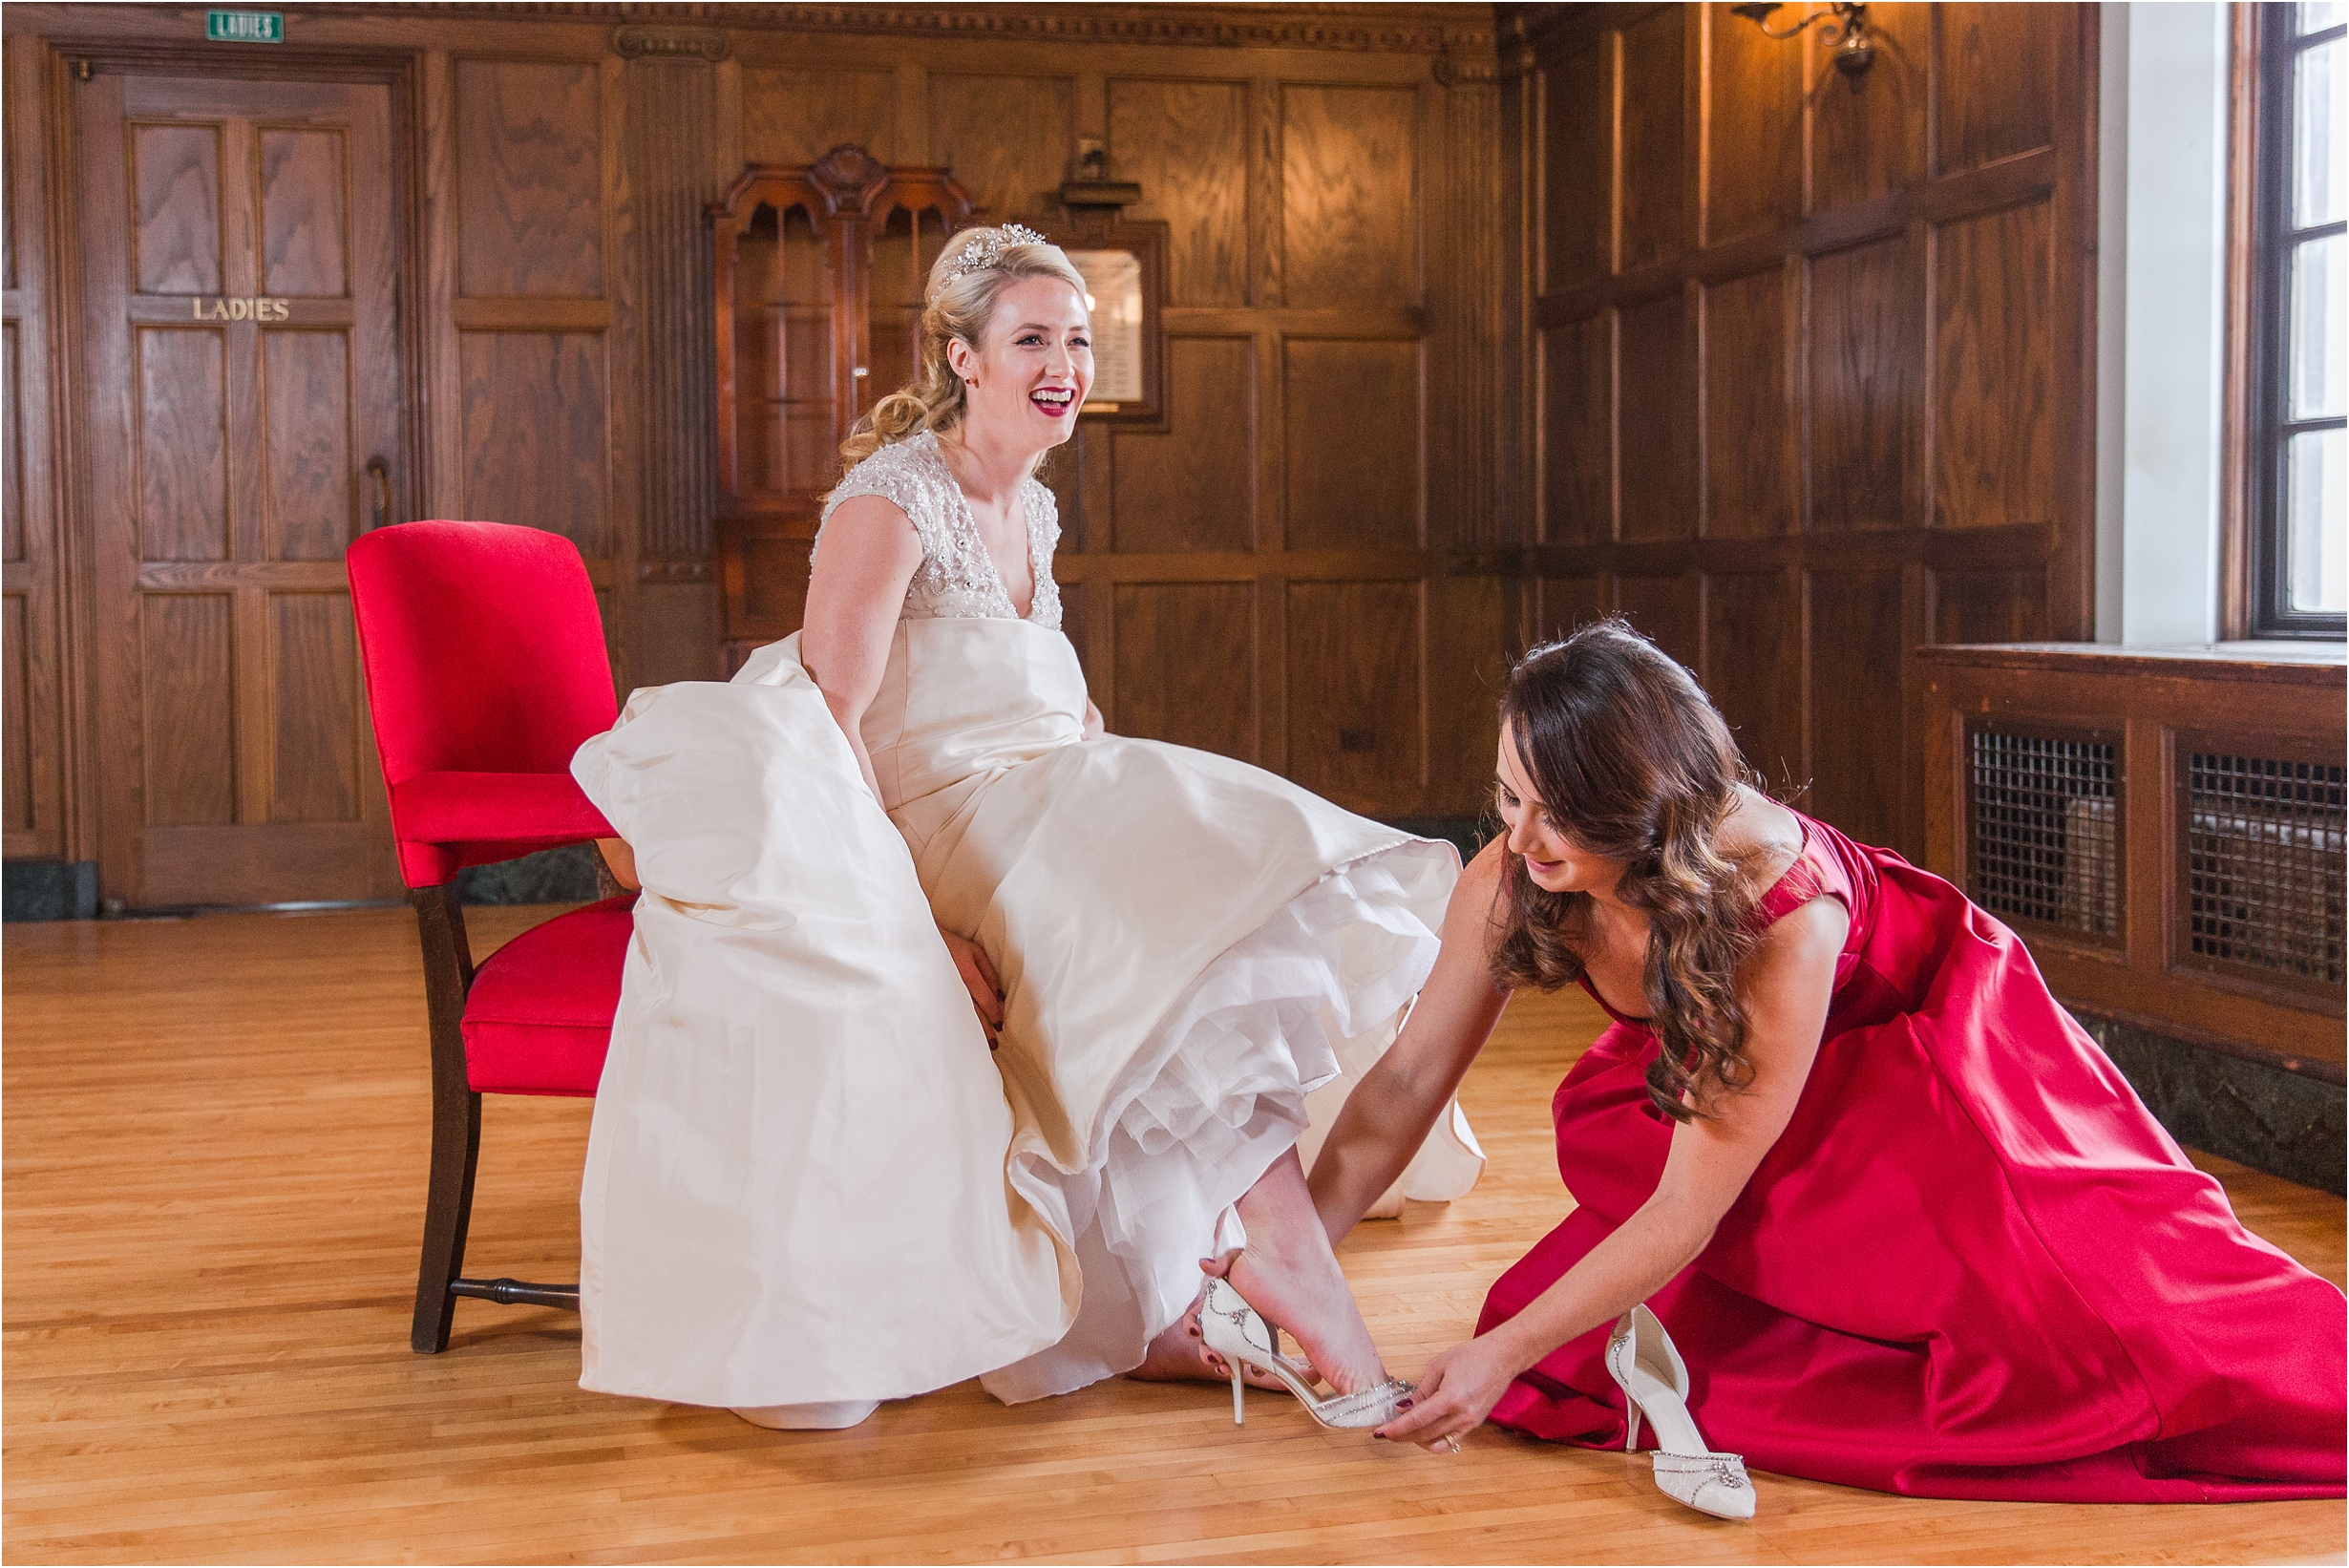 best-of-2016-wedding-photos-with-courtney-carolyn-photography-romantic-timeless-candid-wedding-photographer-in-detroit-mi_0063.jpg